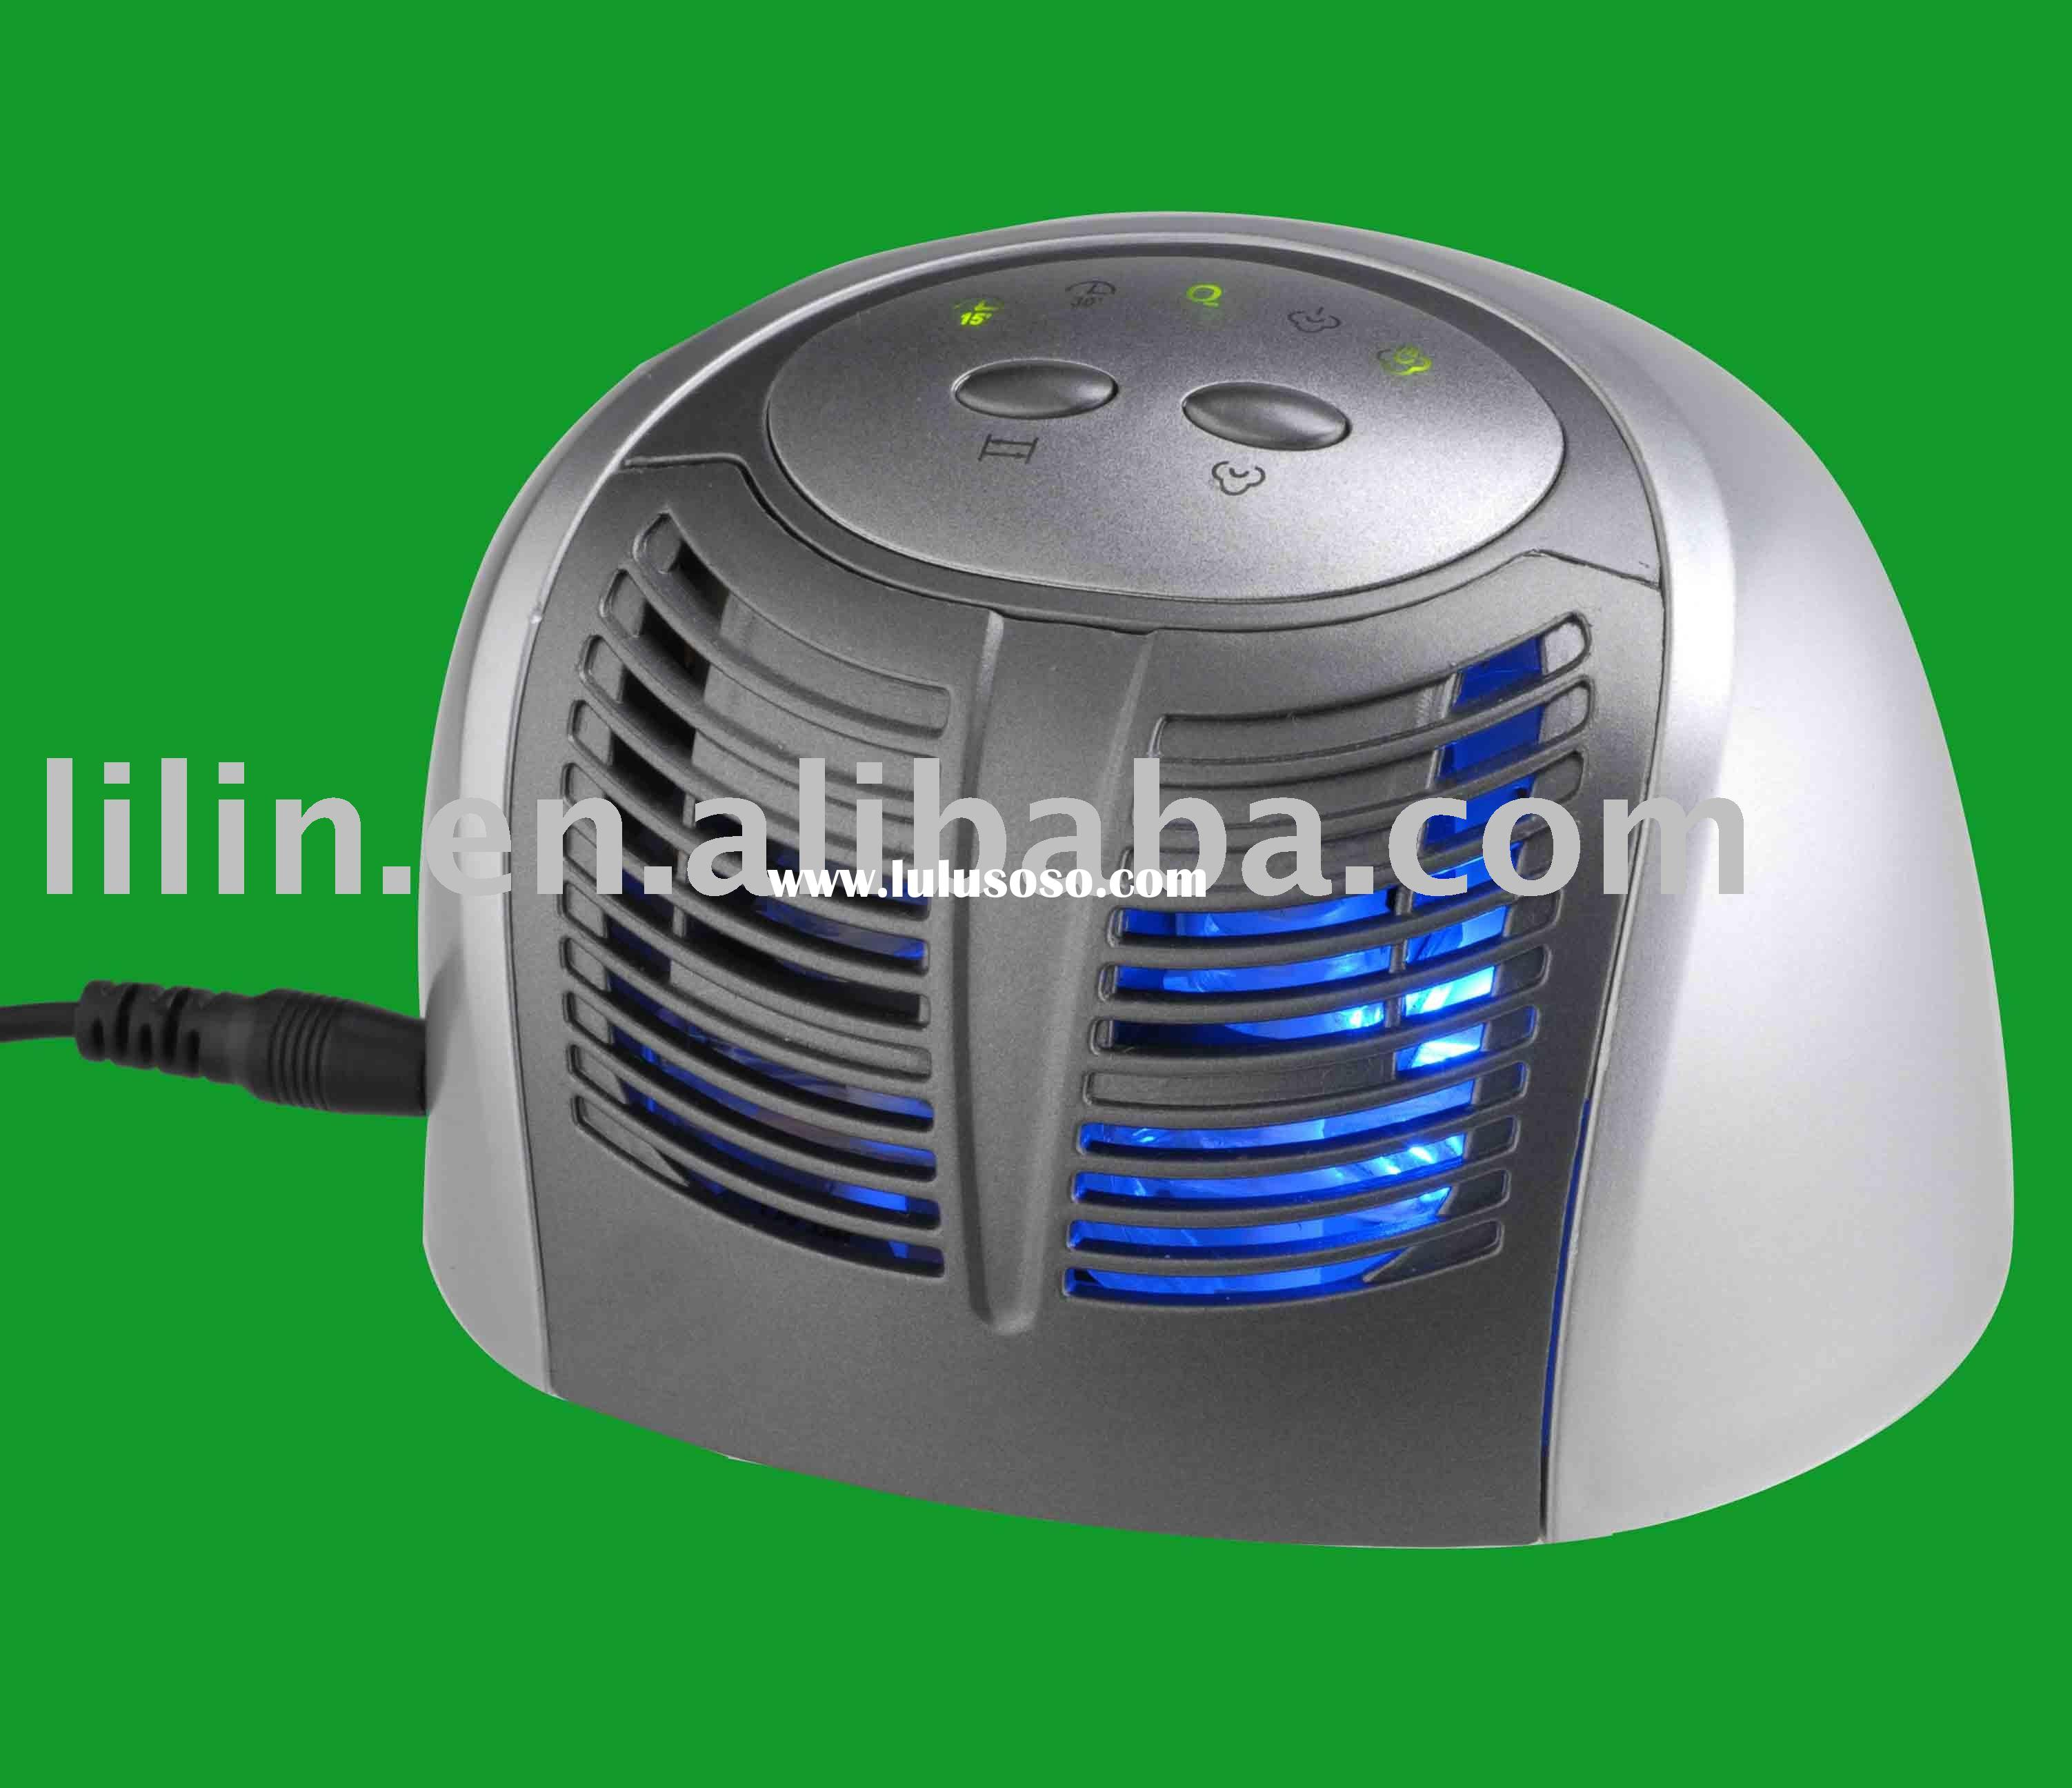 Automatic Fragrance-Changing Oxygen Bar at Auto,Home,Office,Computer(Air Purifier,Air Sterilizer,Ion